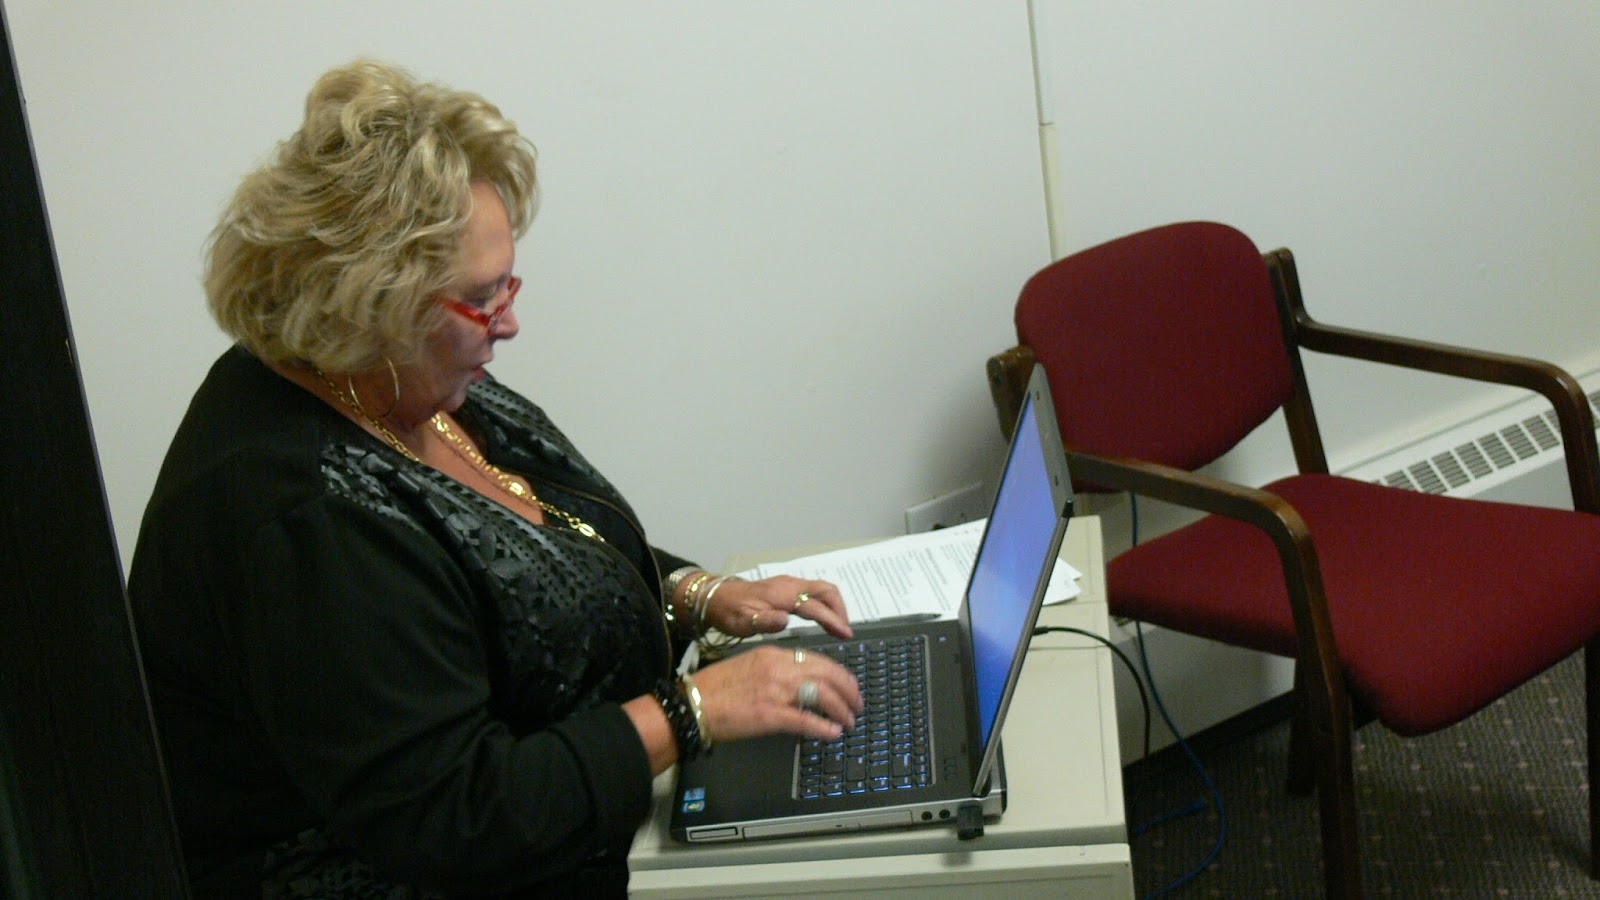 Board of Elections Director Debbie George updates the state website with the eligible provisional ballot totals